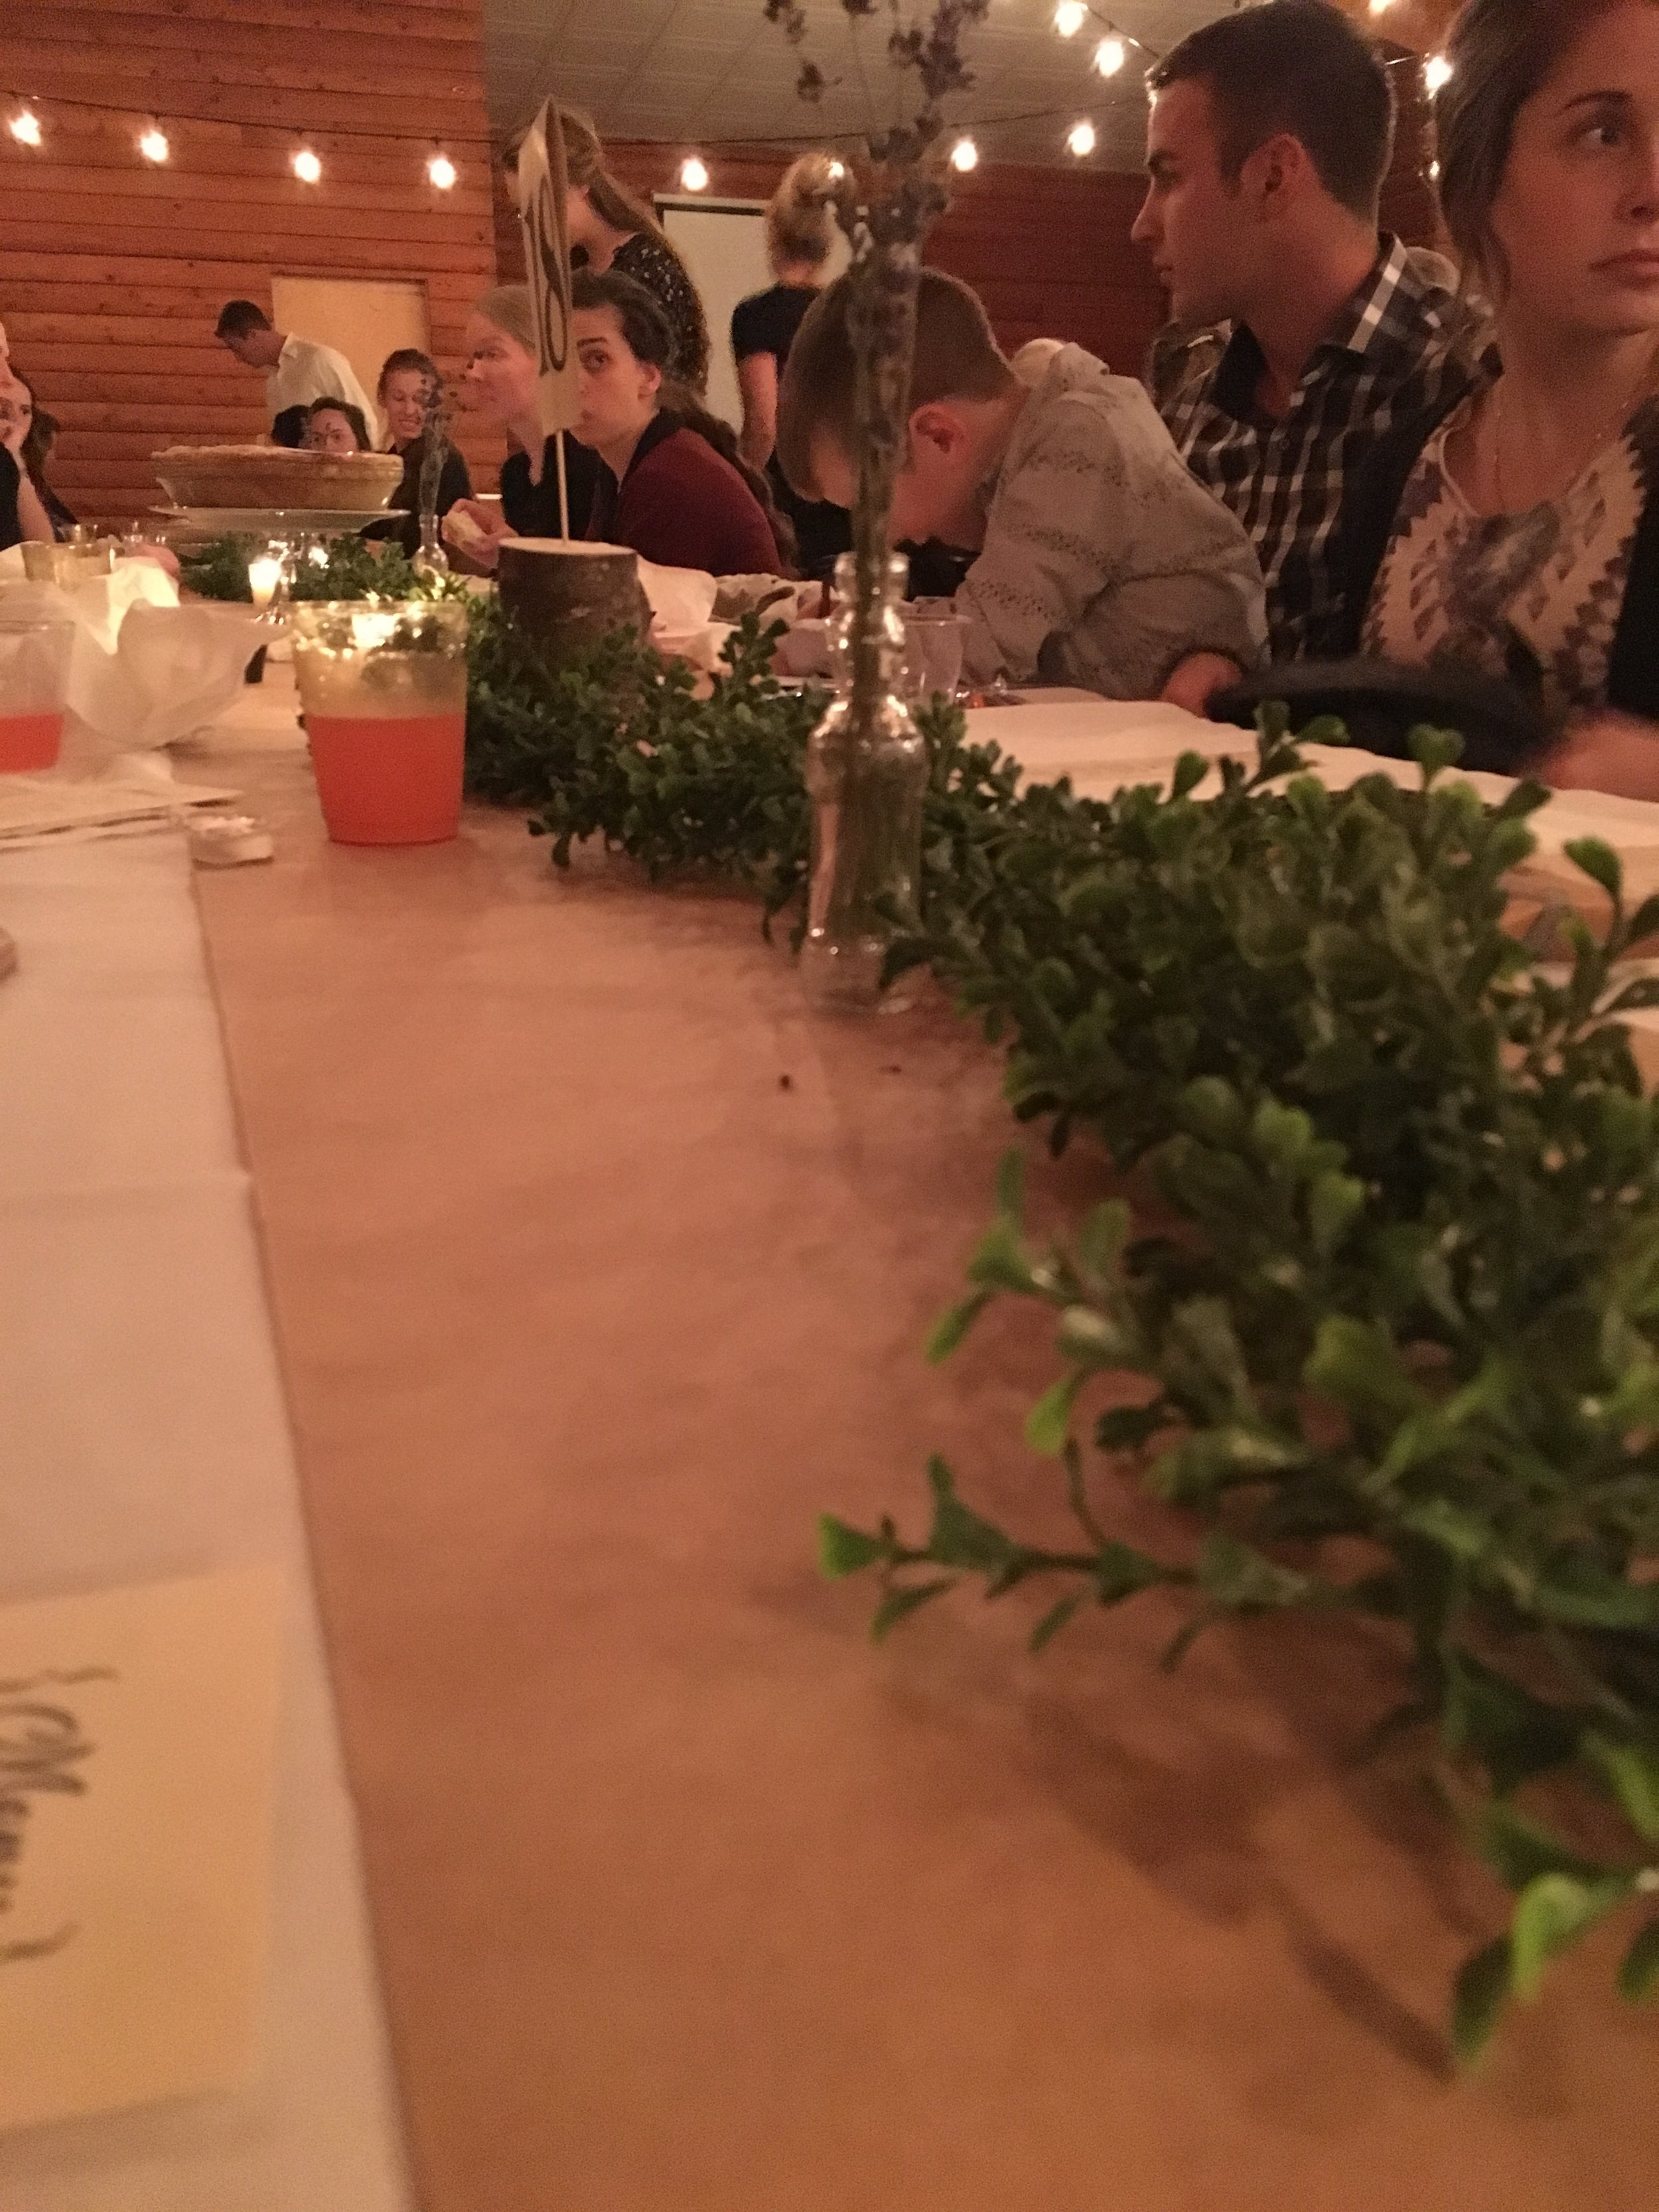 The table setting was little sprigs of lavender and greenery, with the table numbers poked into a small log